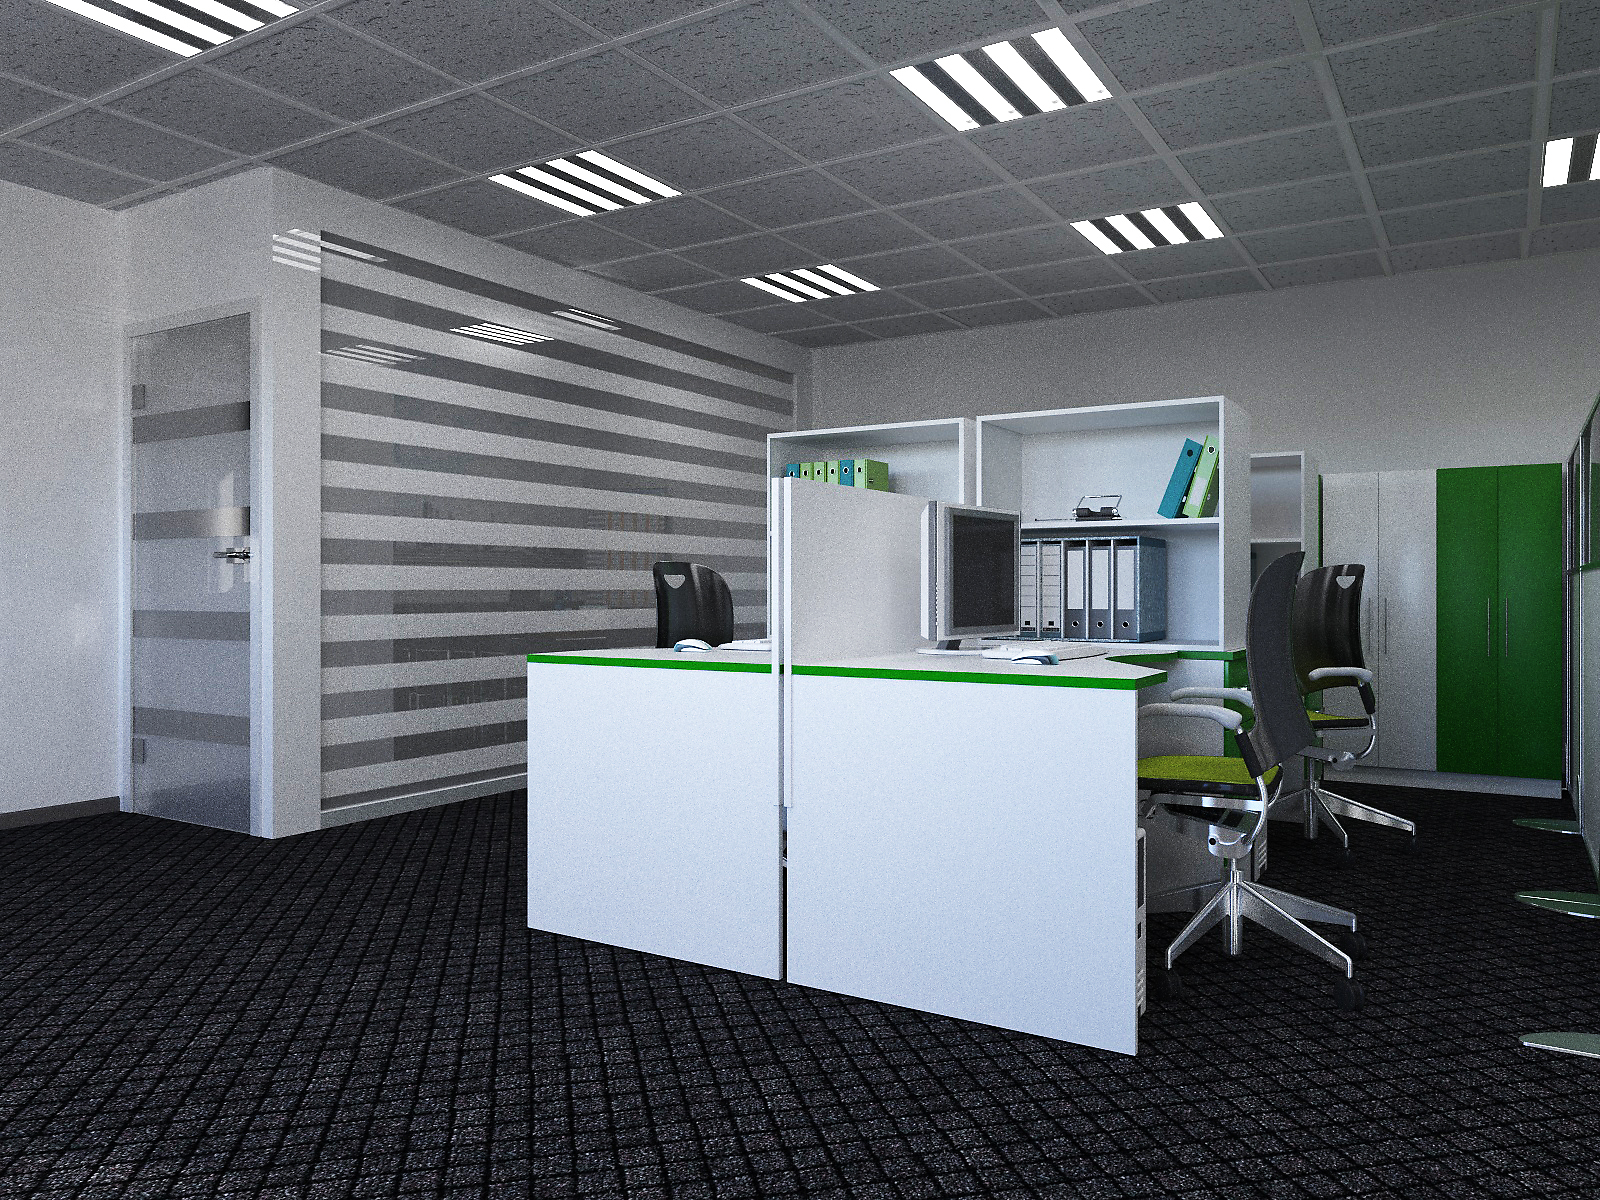 Office_002_ps